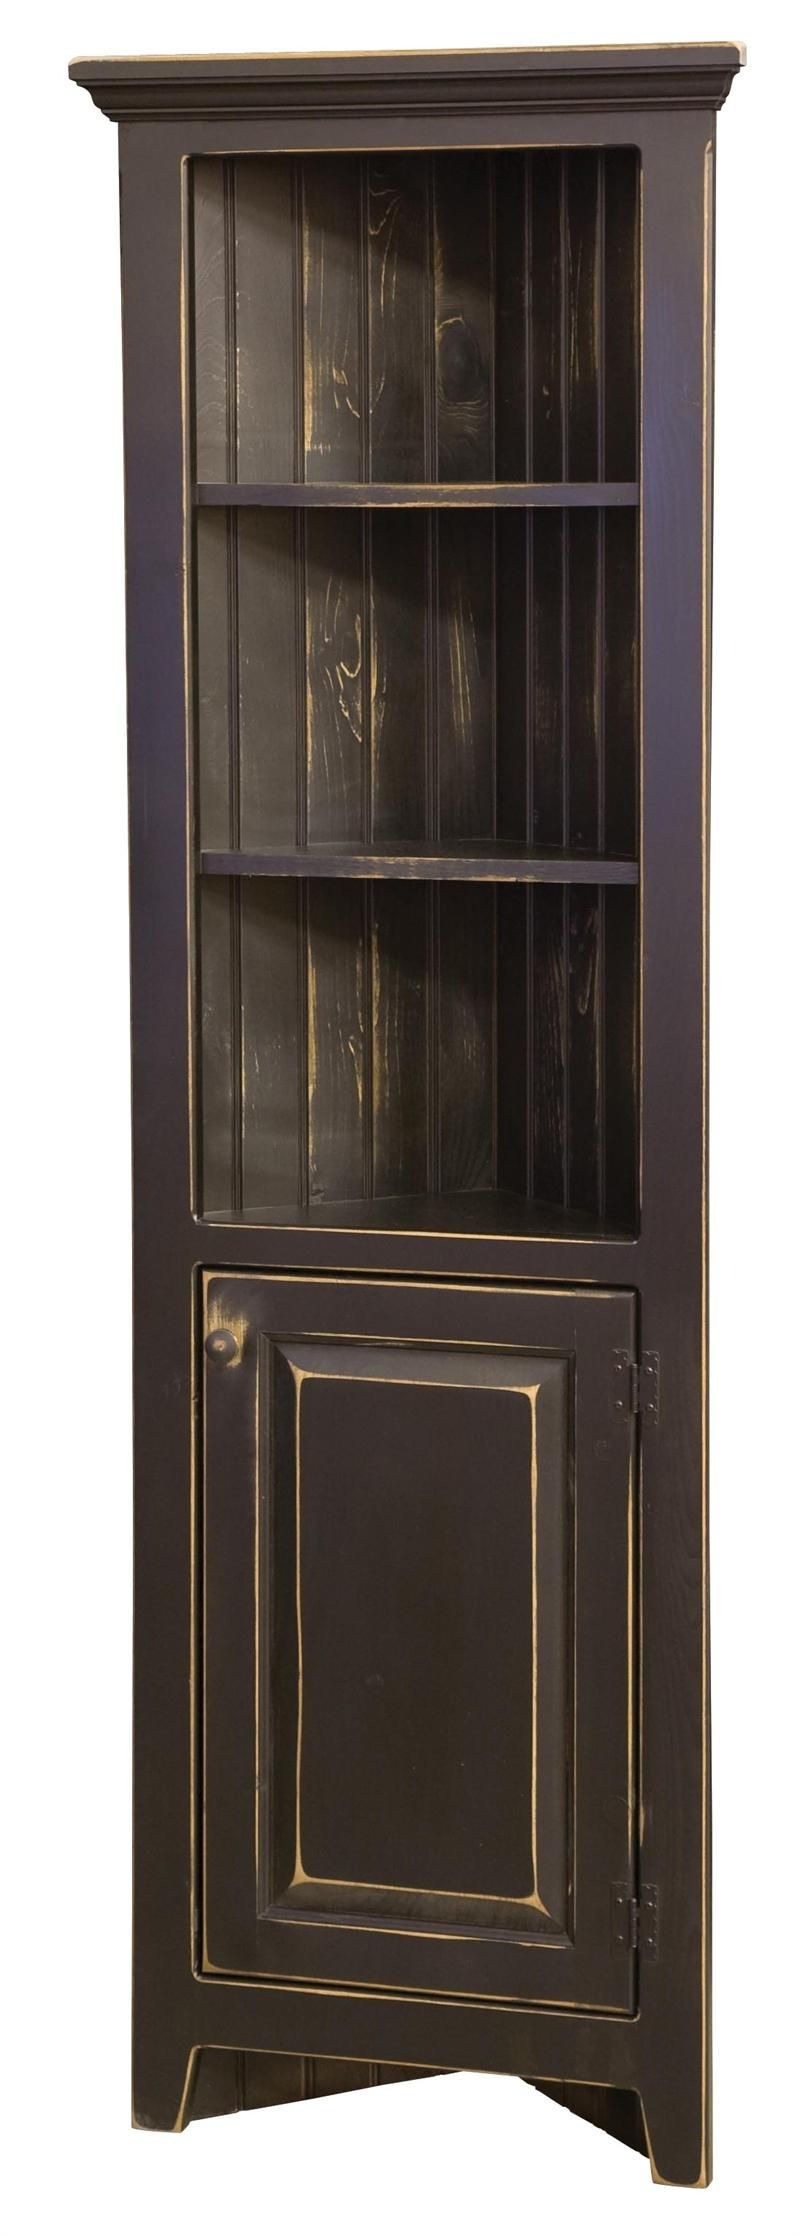 black corner cabinet furniture home dining room